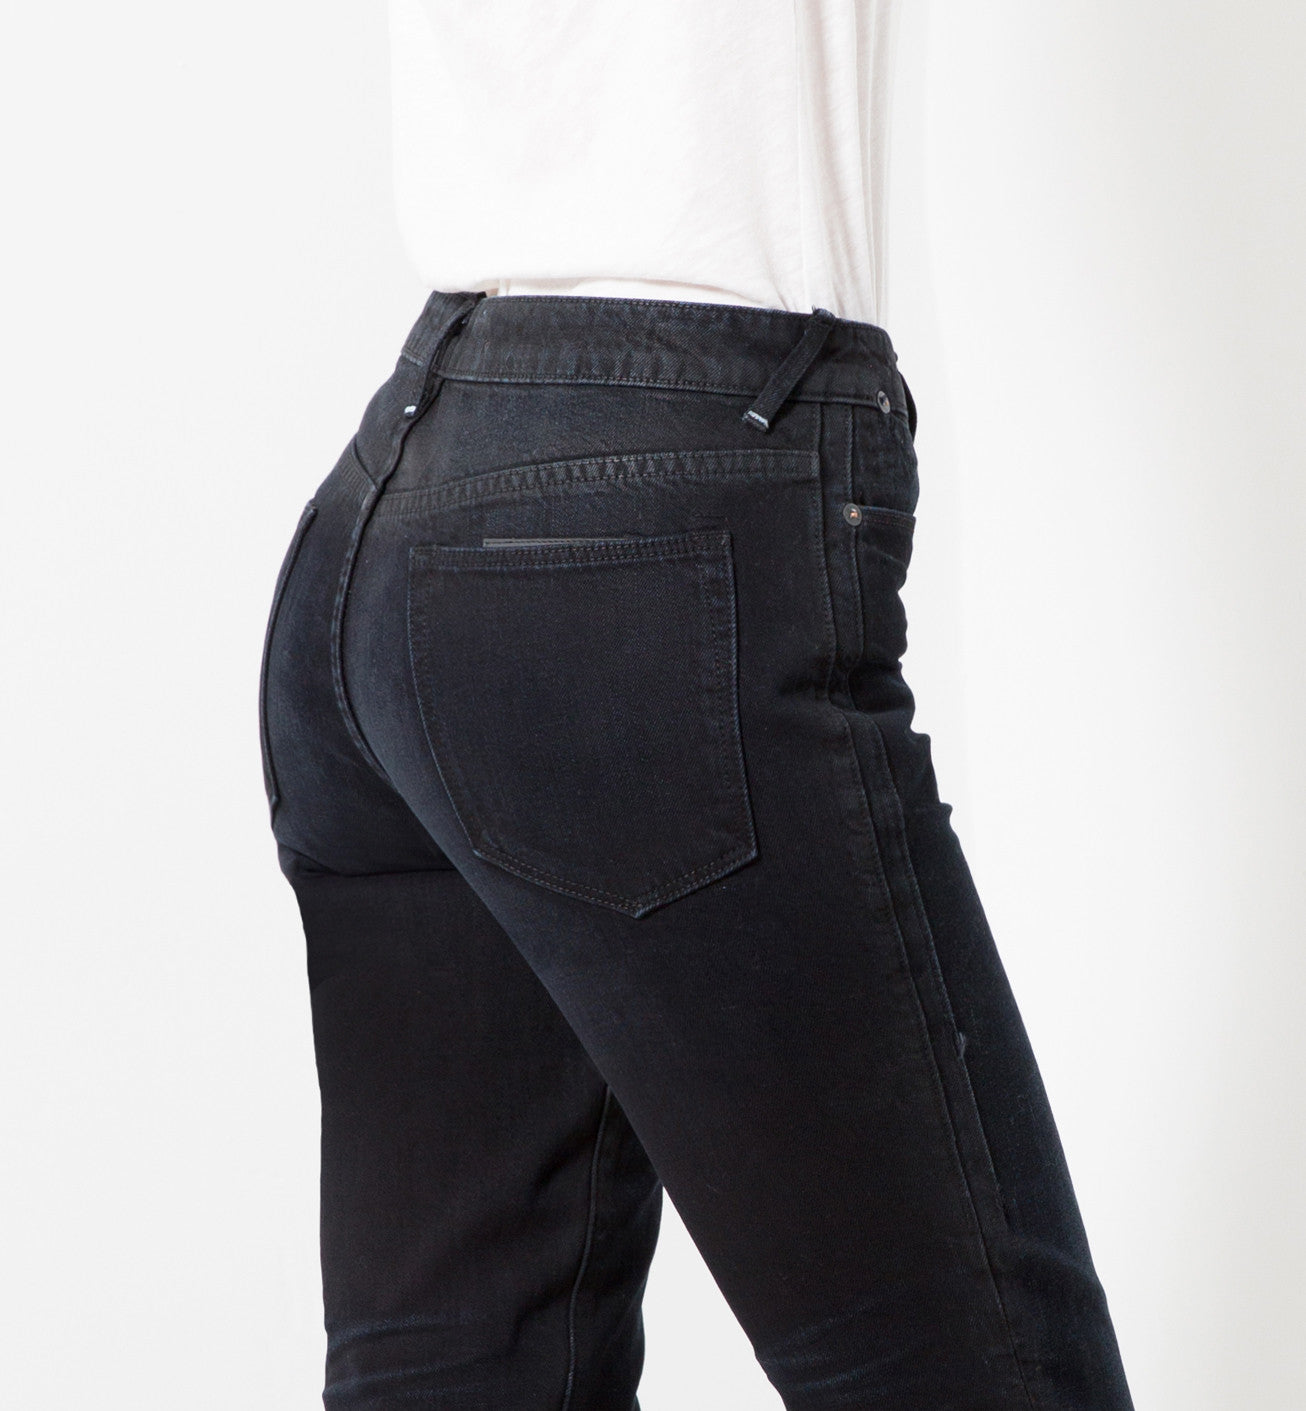 HIGH RISE SLIM in BEDFORD | MADE TO ORDER